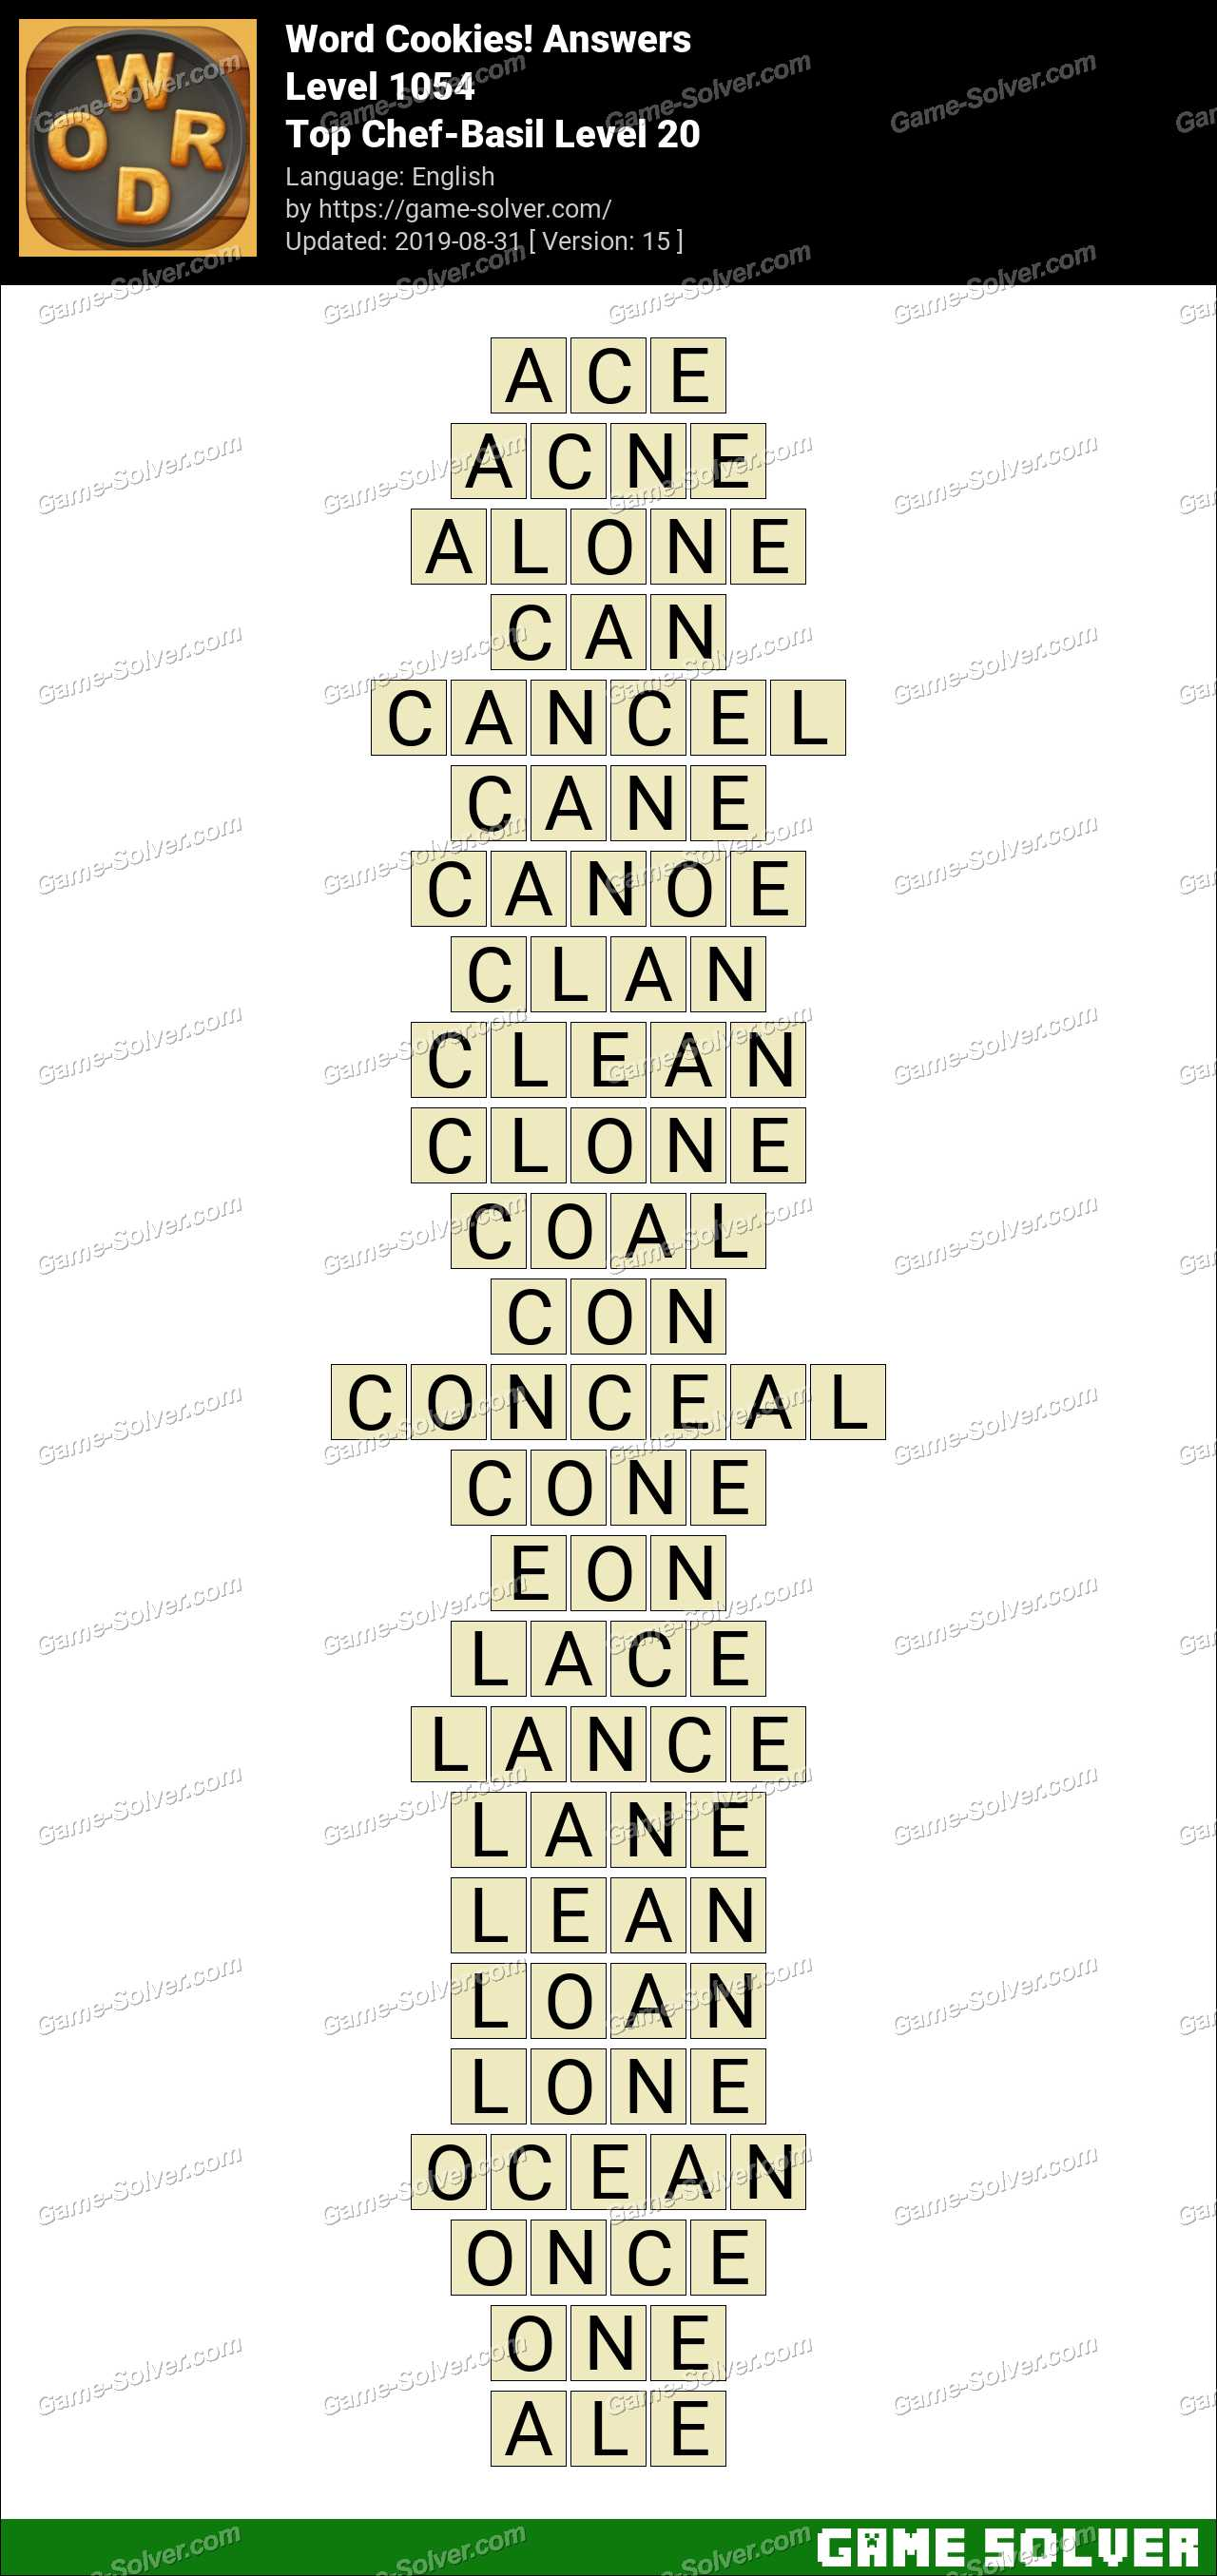 Word Cookies Top Chef-Basil Level 20 Answers